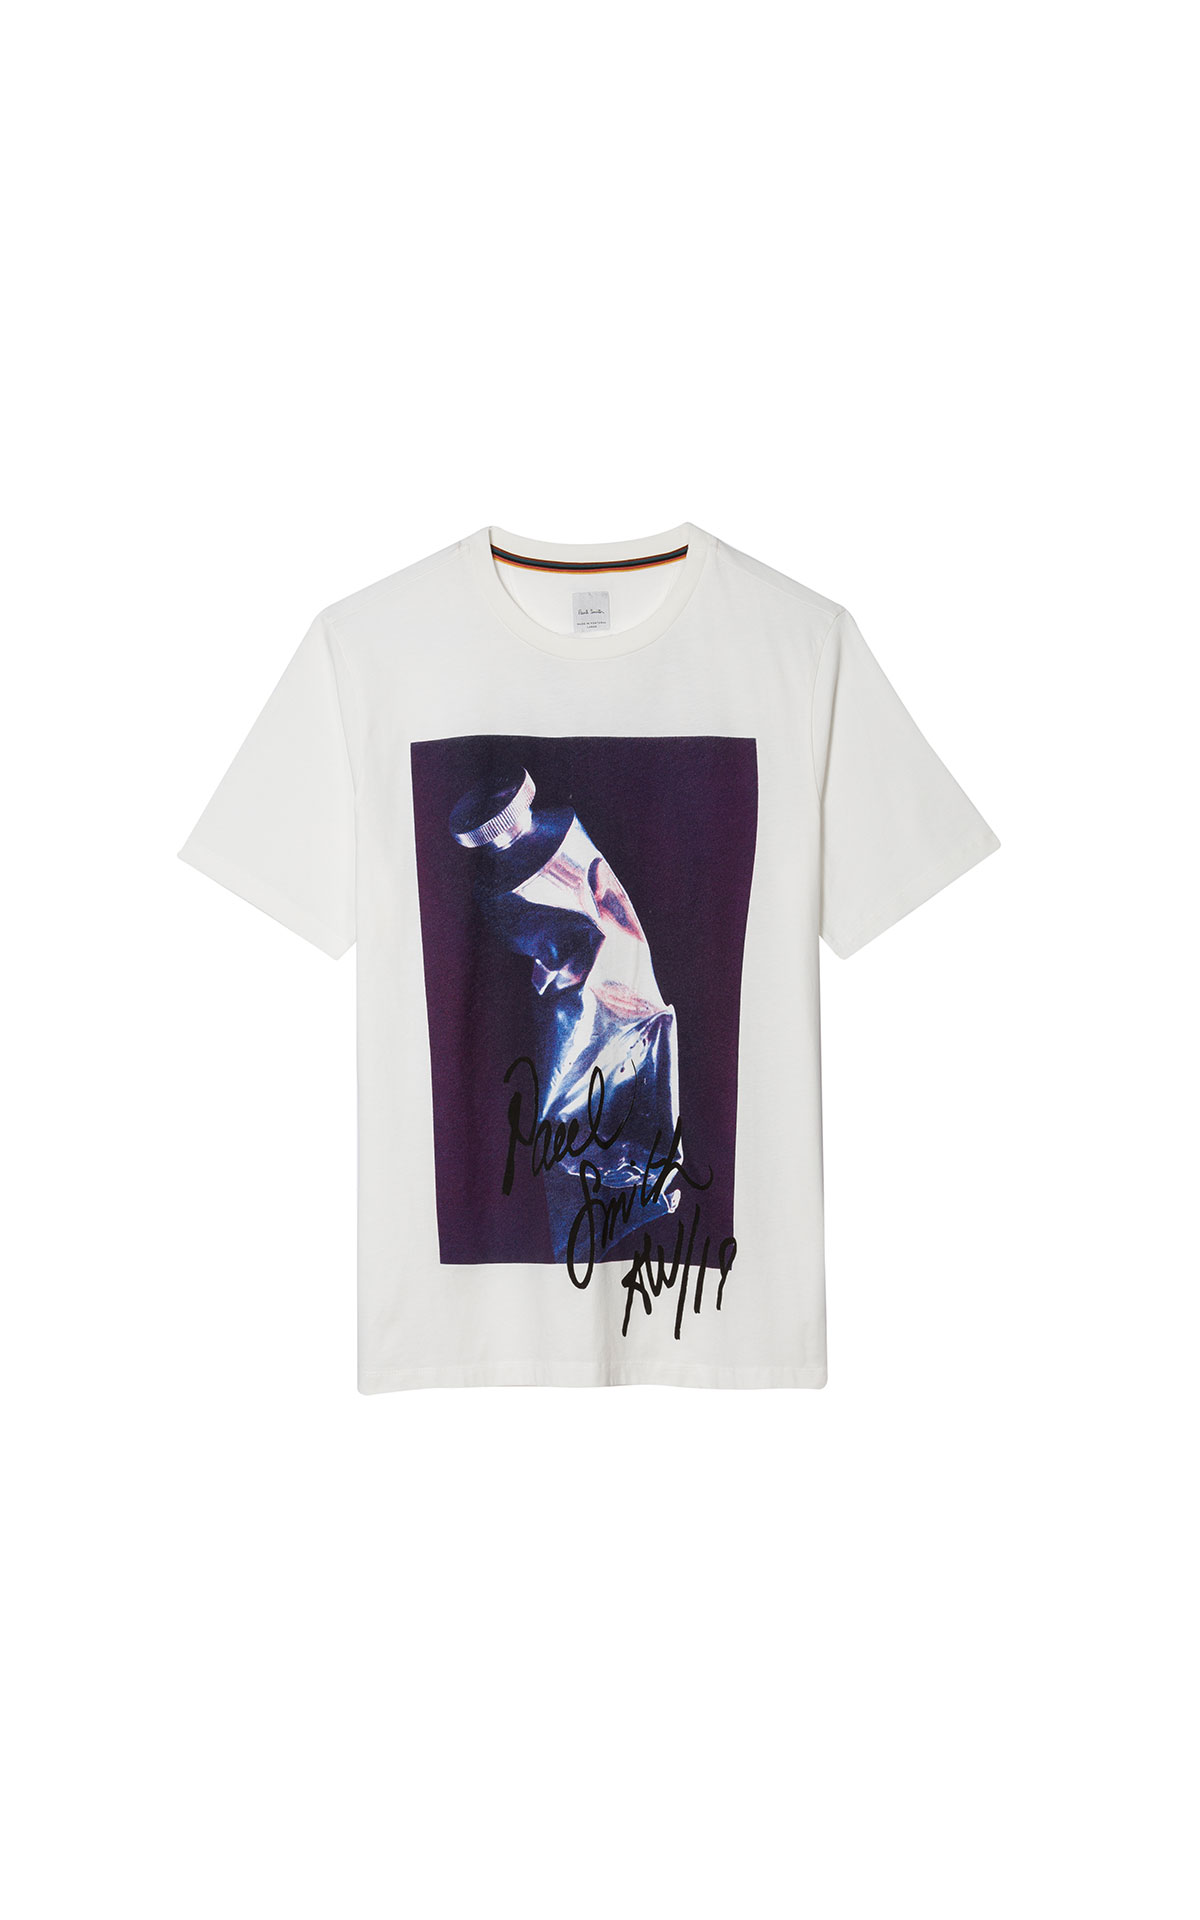 Paul Smith artist studio t-shirt at The Bicester Village Shopping Collection